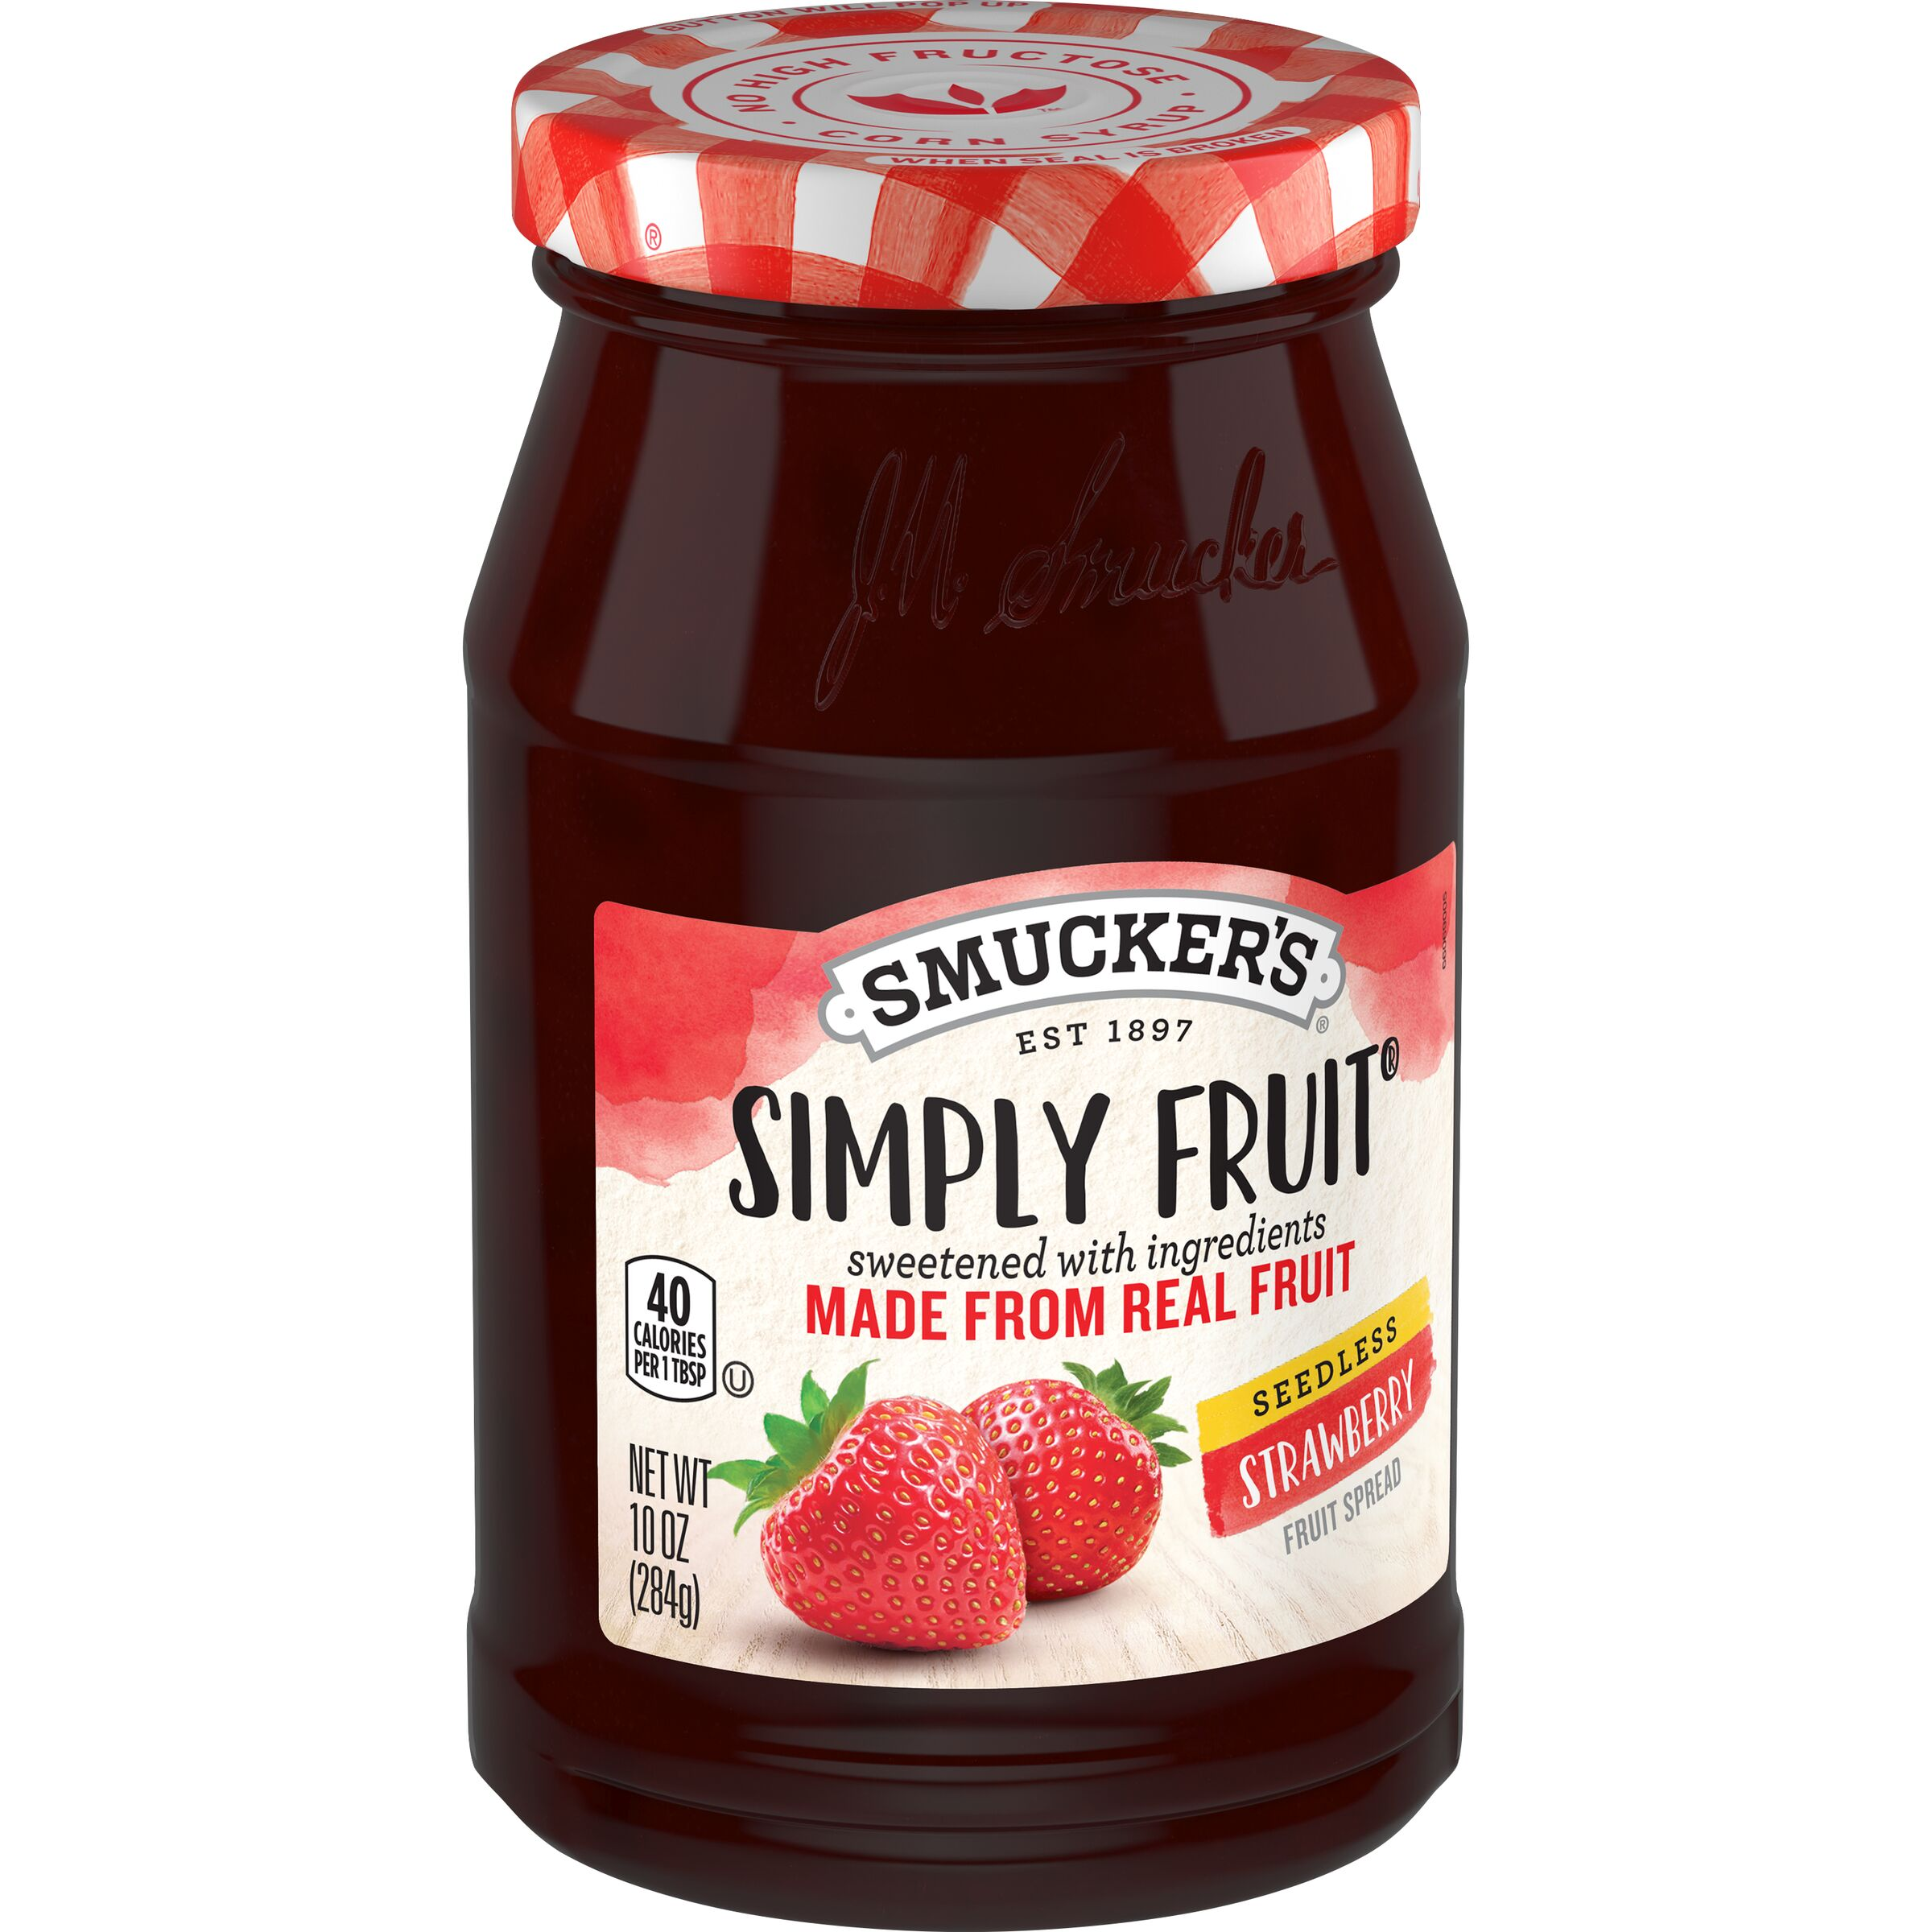 Smucker's Simply Fruit Seedless Strawberry Spreadable Fruit